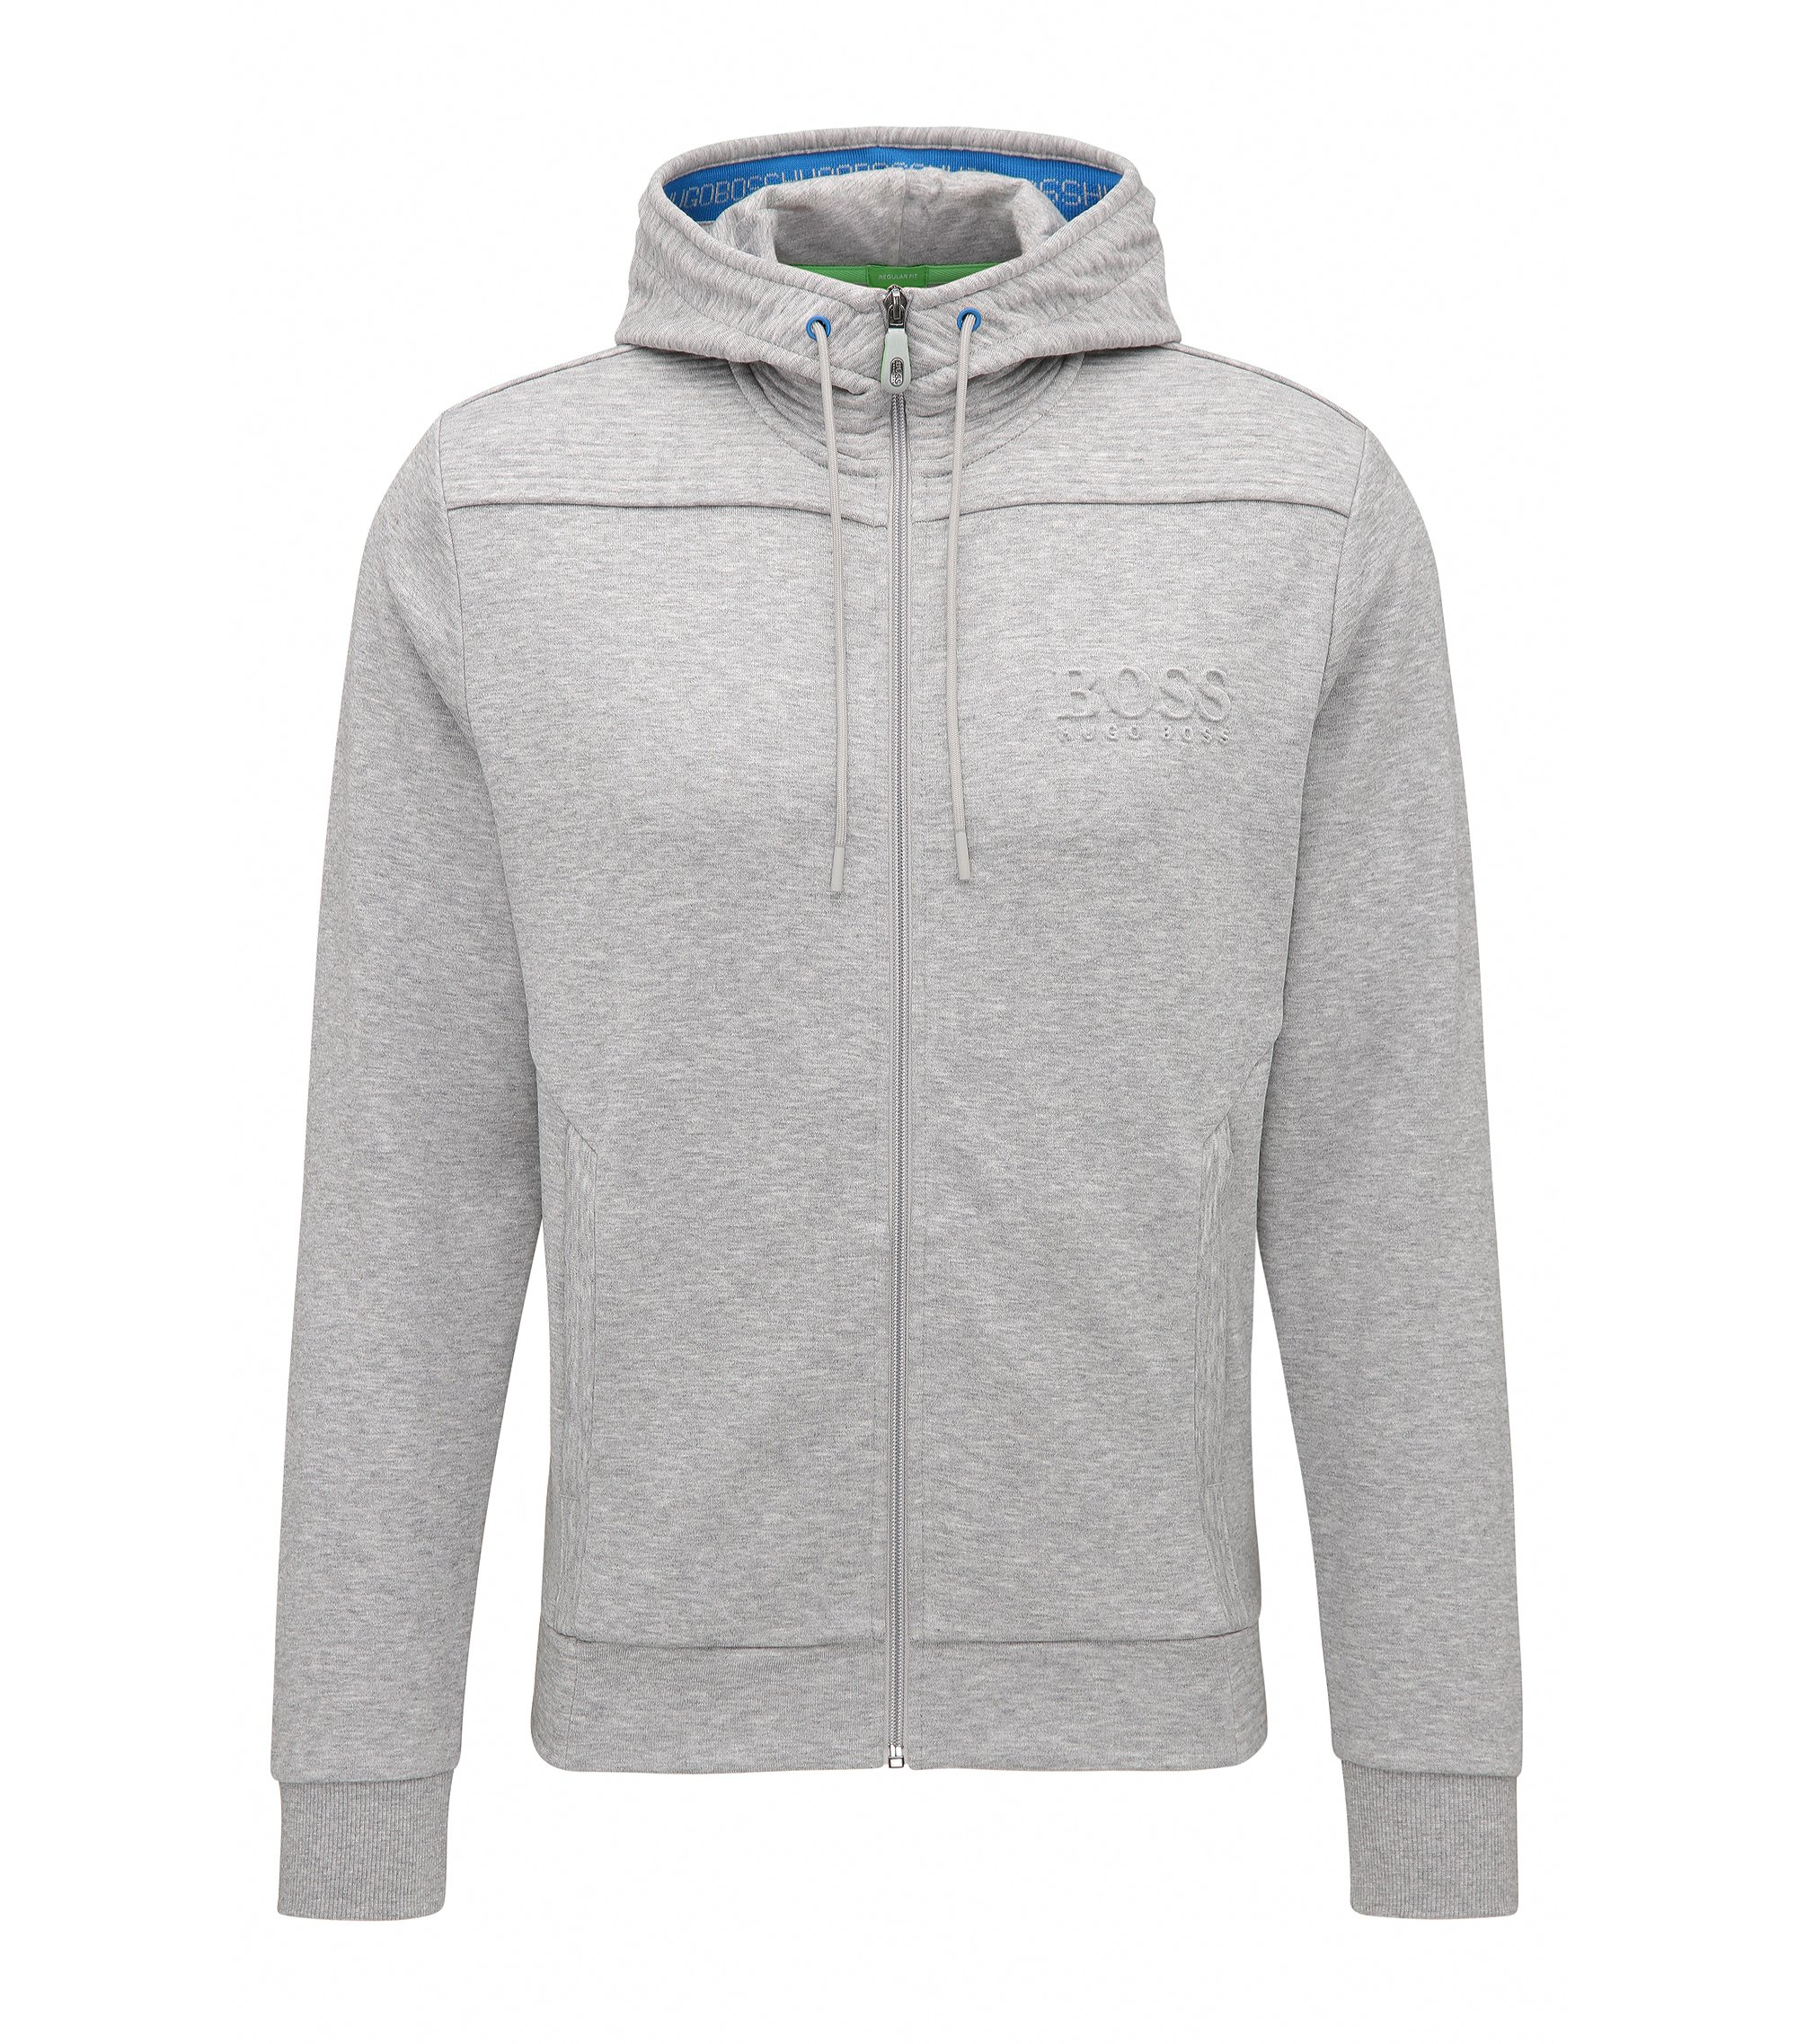 Sweat à capuche Regular Fit en coton mélangé, Gris chiné